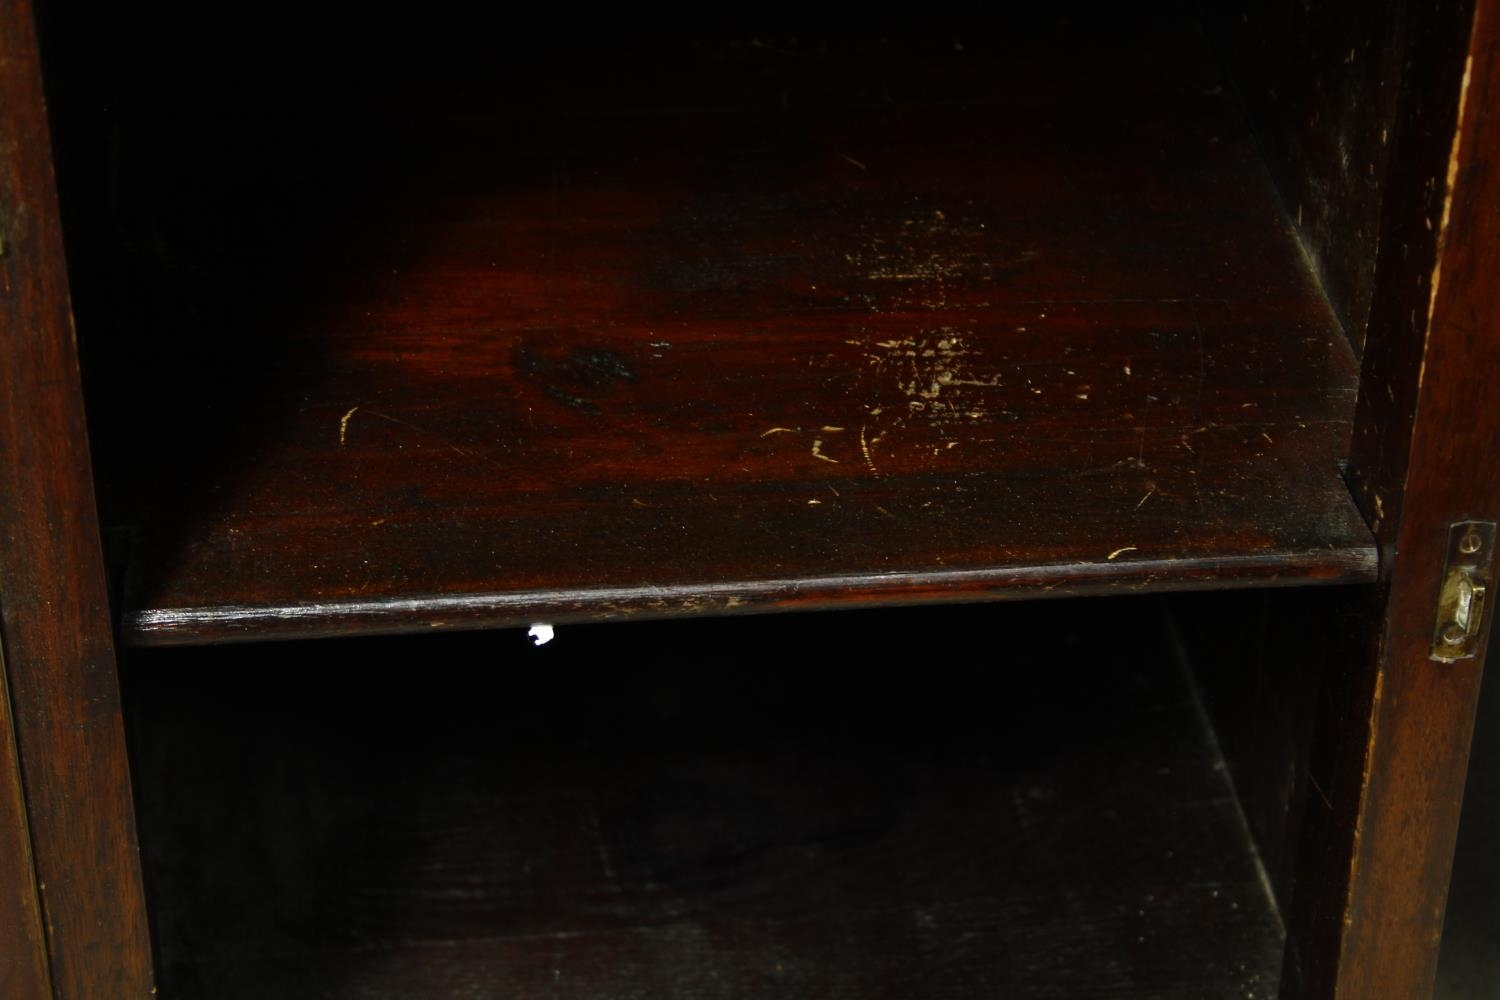 A C.1900 mahogany three section partner's pedestal desk with inset tooled leather top above an - Image 7 of 20